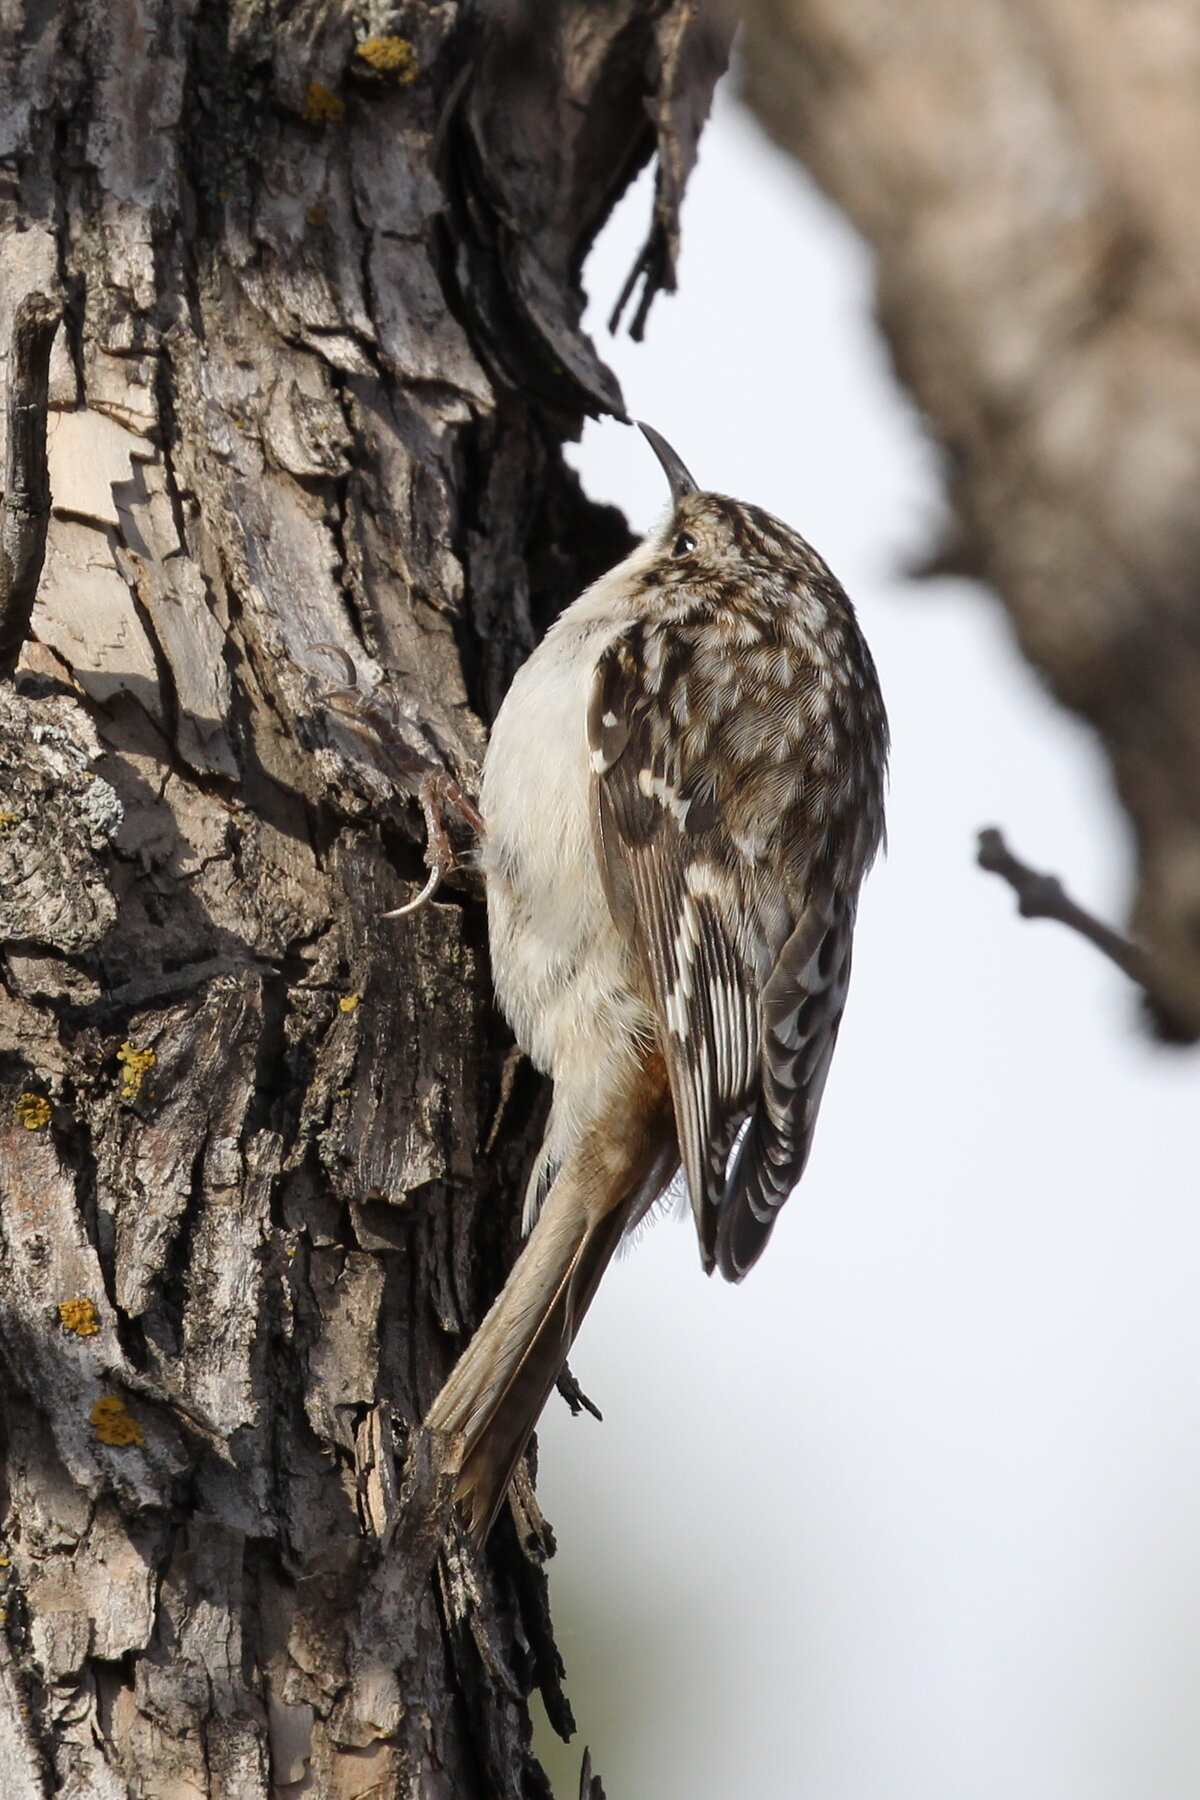 Photograph titled 'Brown Creeper'